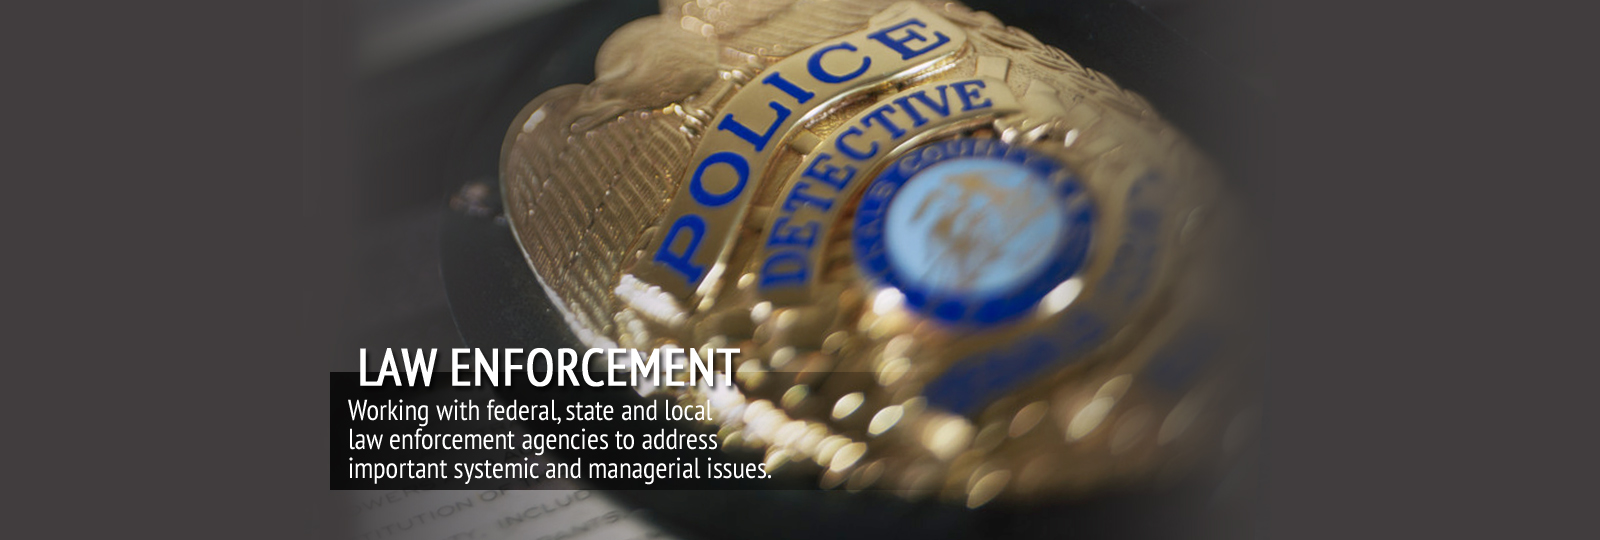 Slide 4 – Law Enforcement